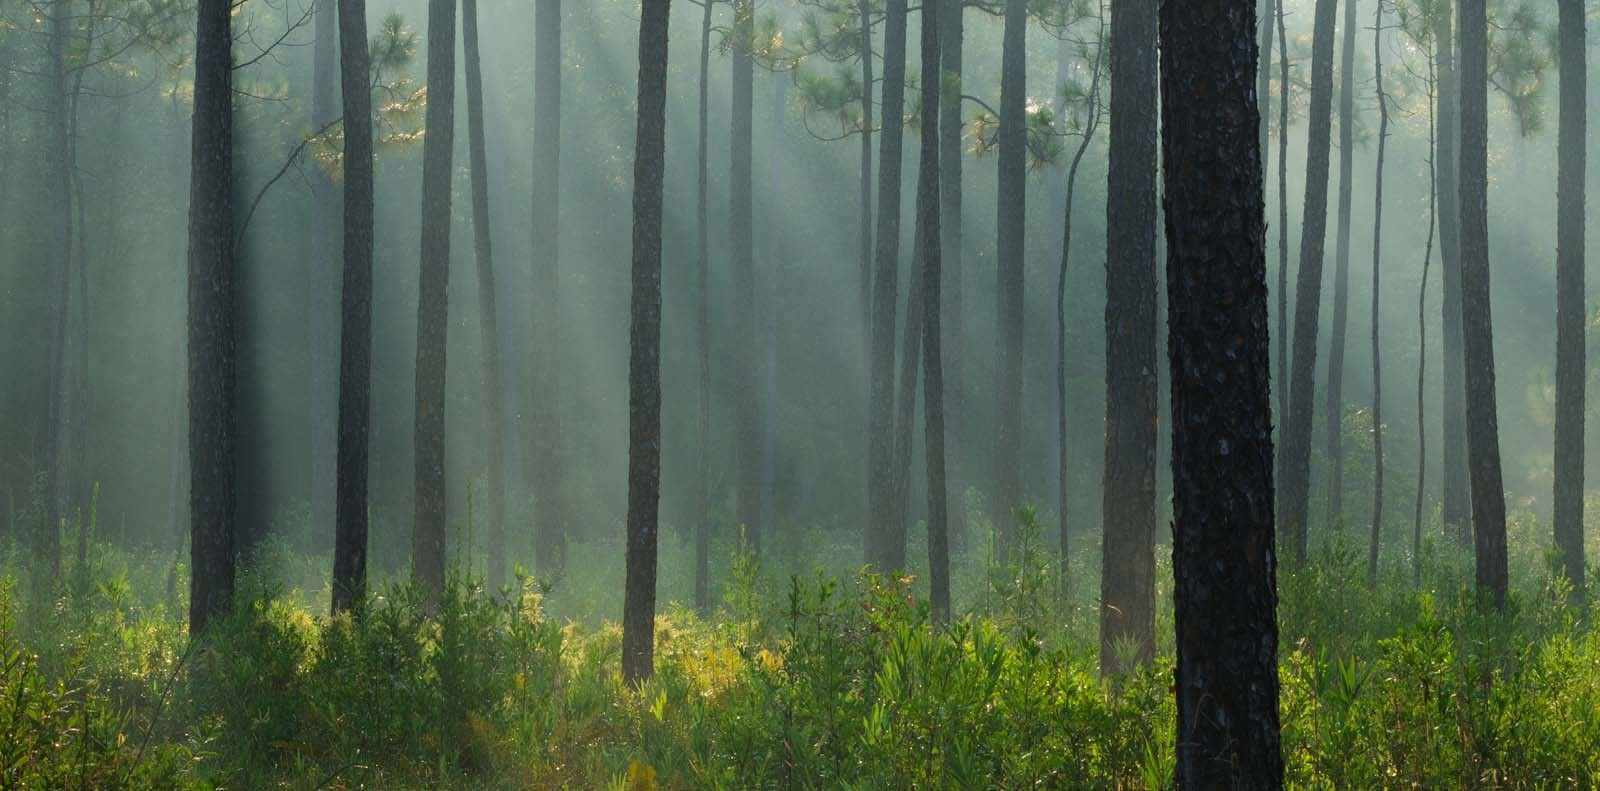 Forest in Alabama